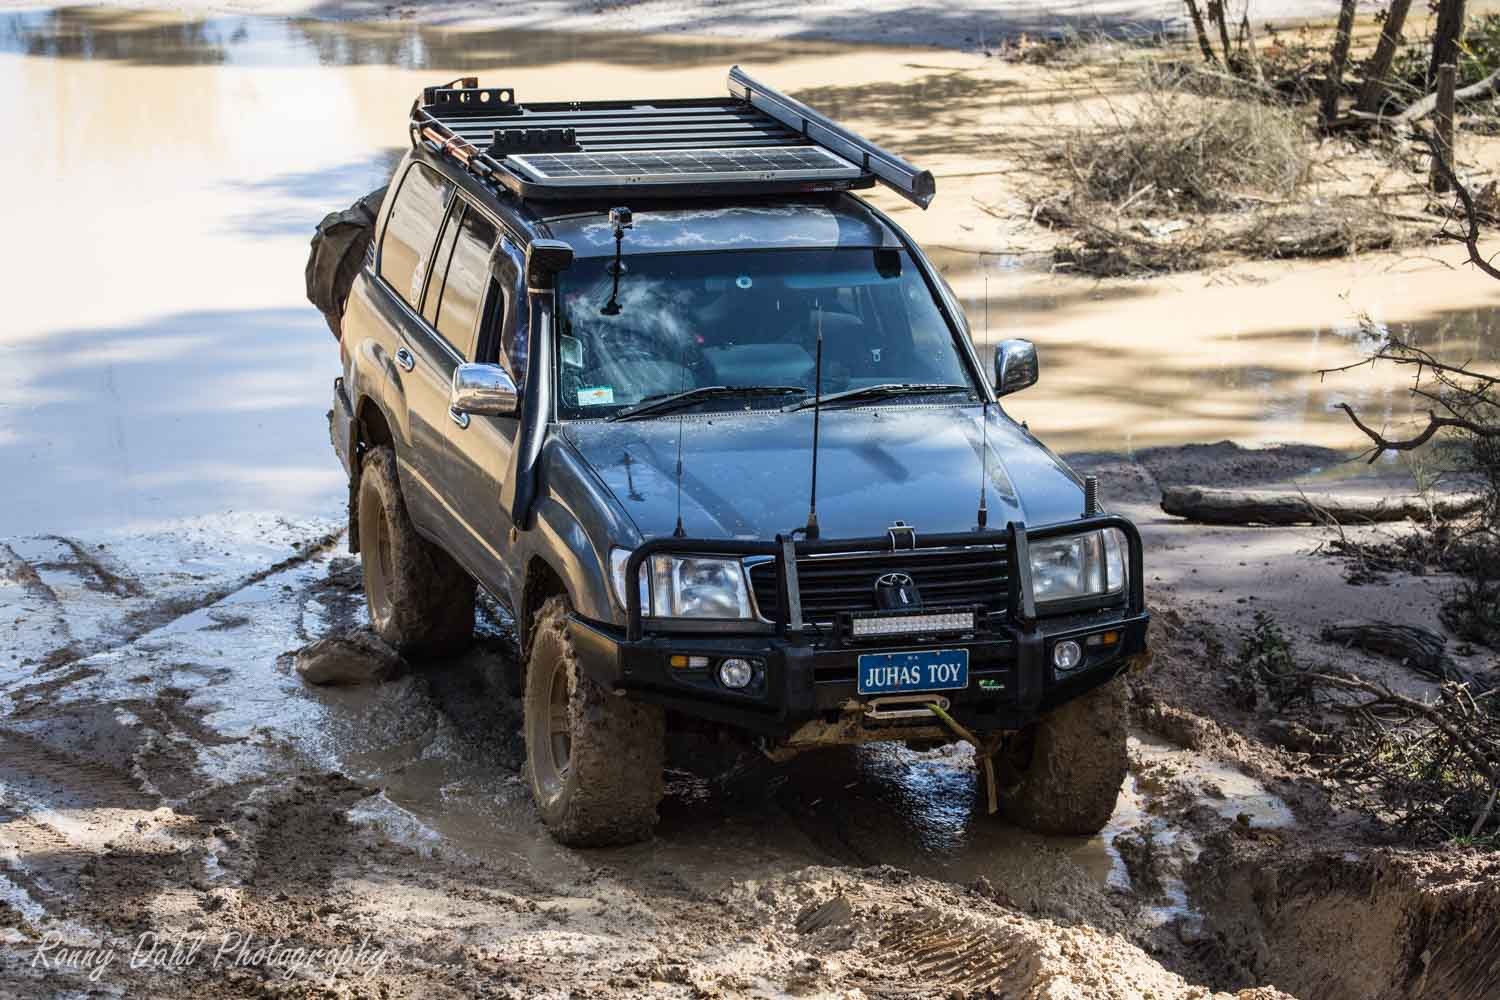 Series 105, 1998 Toyota Land Cruiser on the Power Line Track.